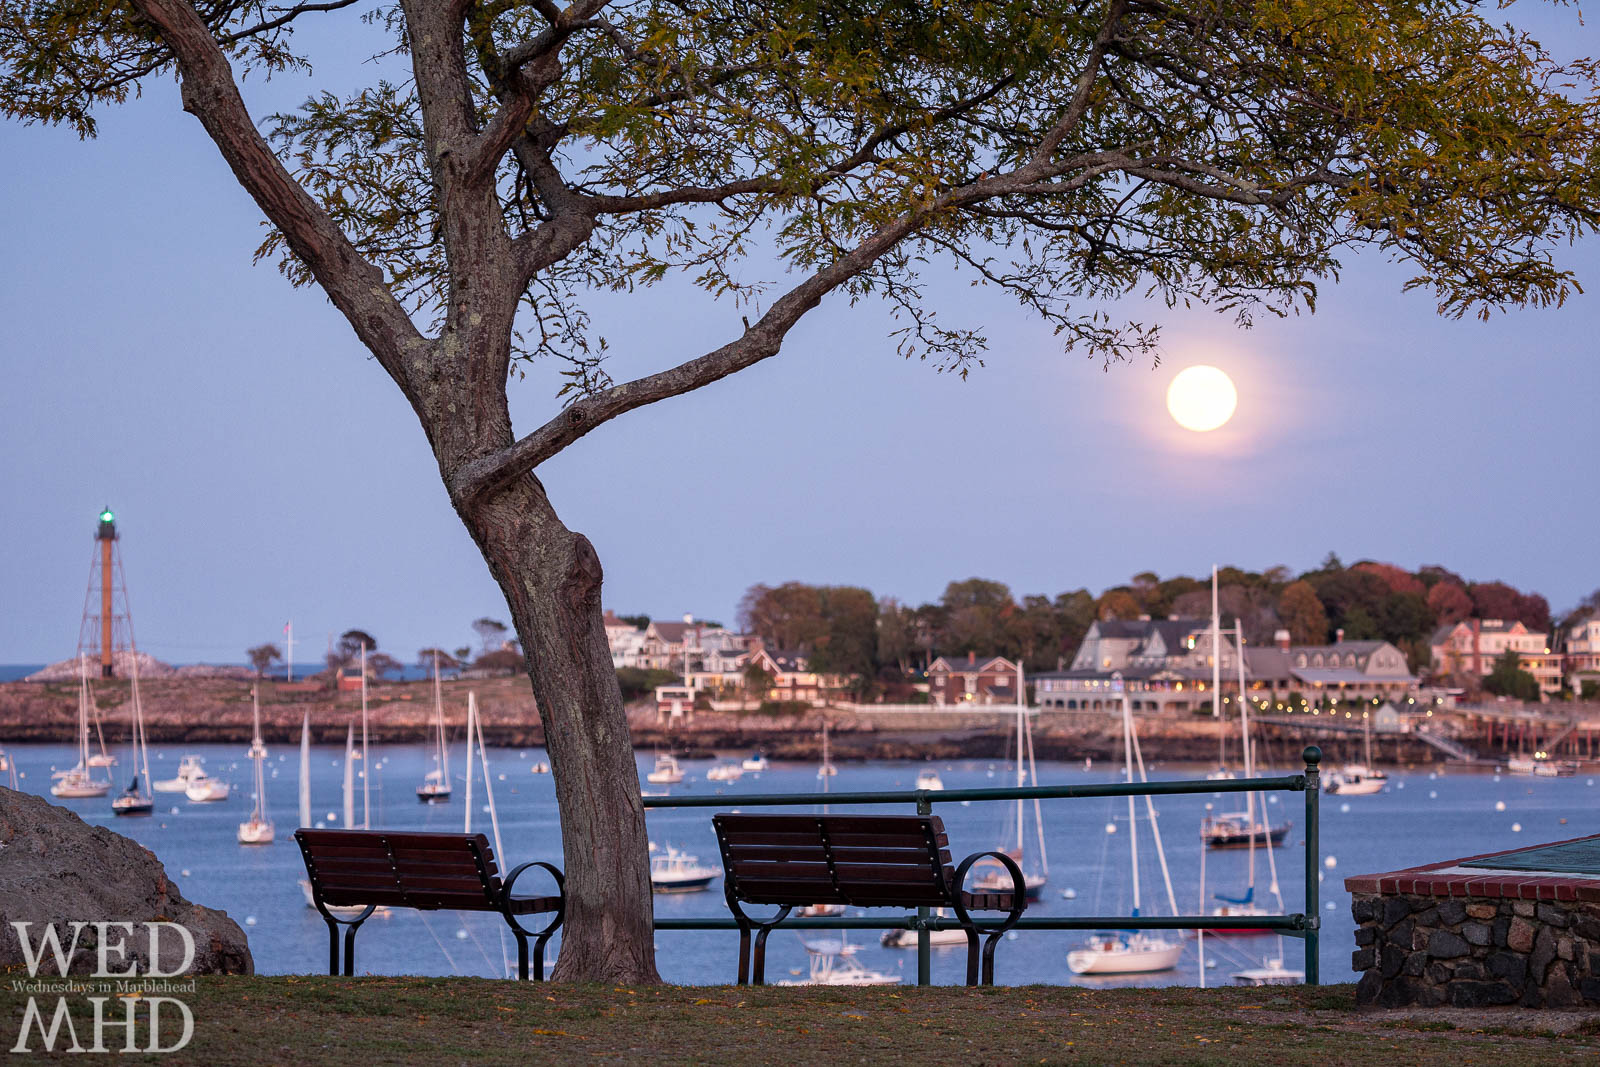 The full Hunters moon rises over the Eastern Yacht Club as seen from Crocker Park